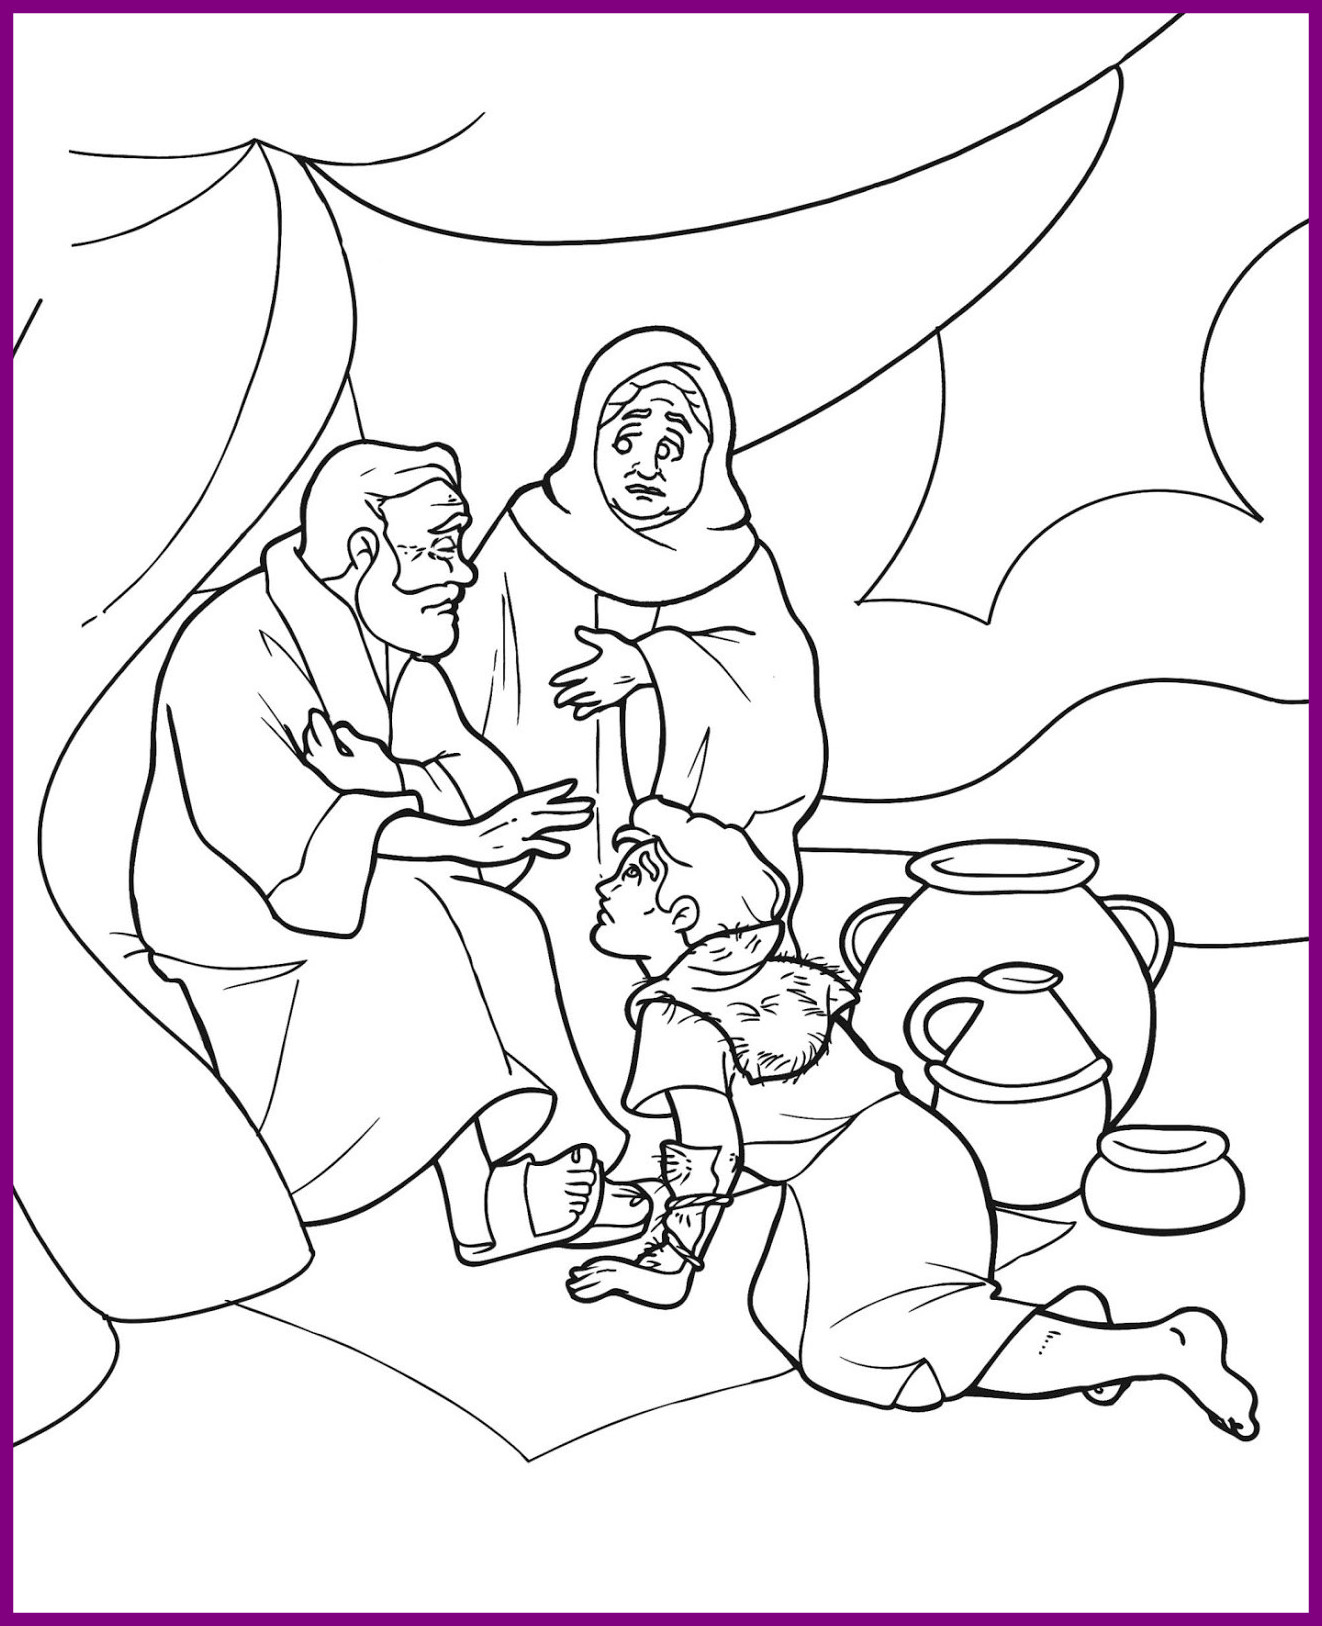 Jacob And Esau Coloring Pages Printable At Getdrawings